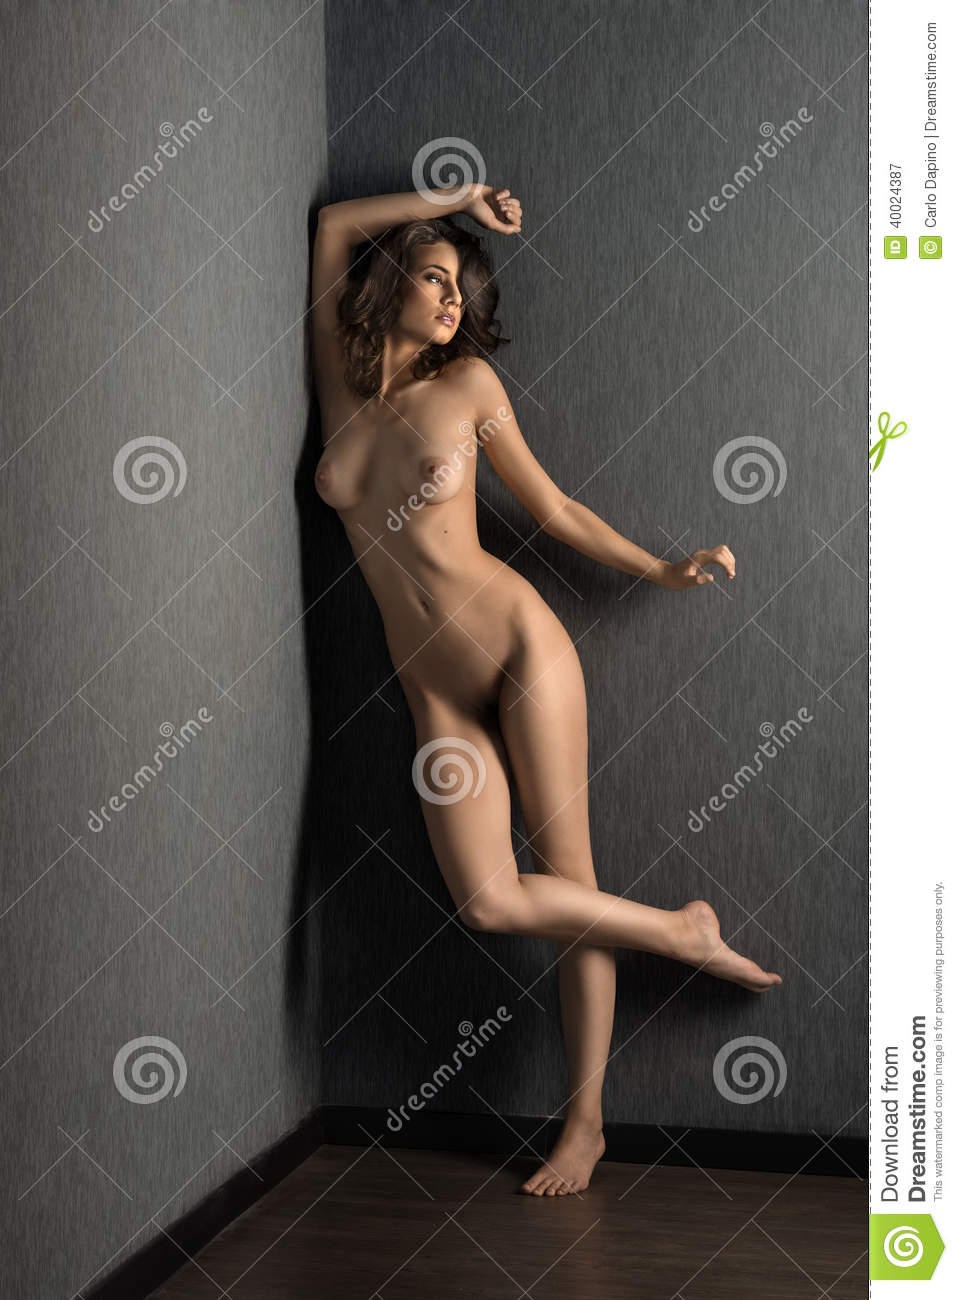 woman art posing naked